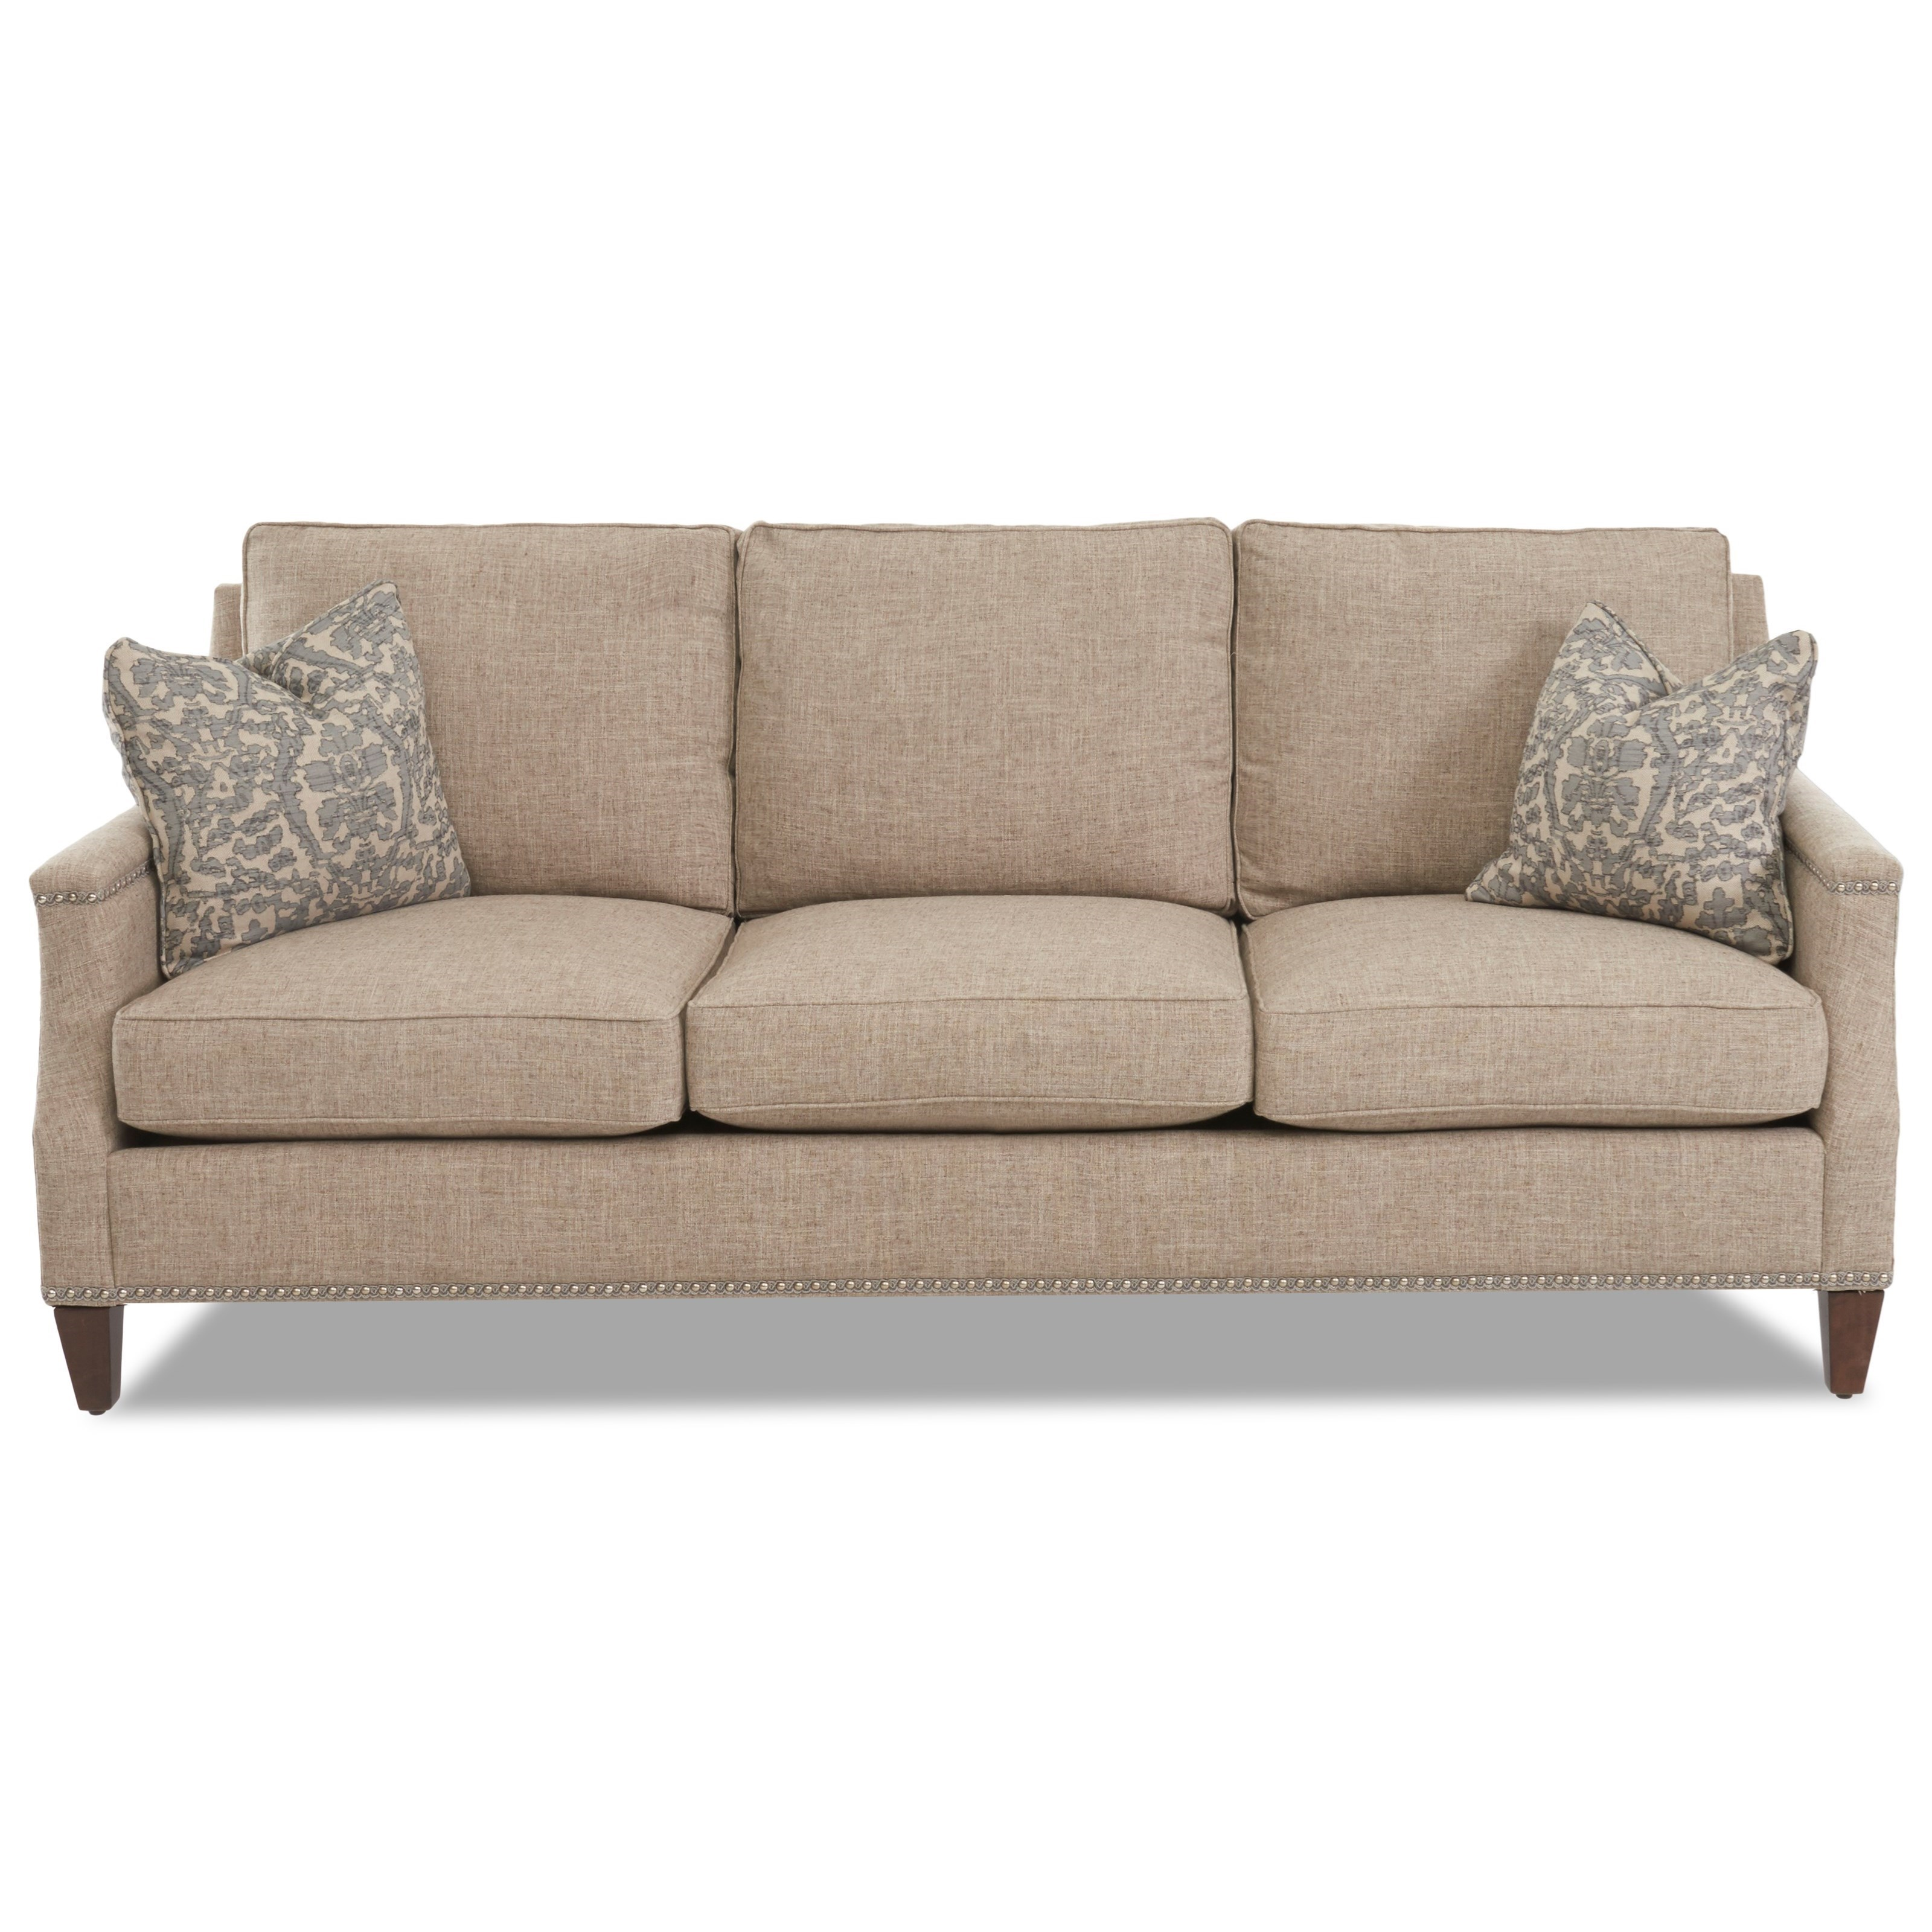 sofa beds blackburn shayla chaise canada klaussner sofas home the honoroak